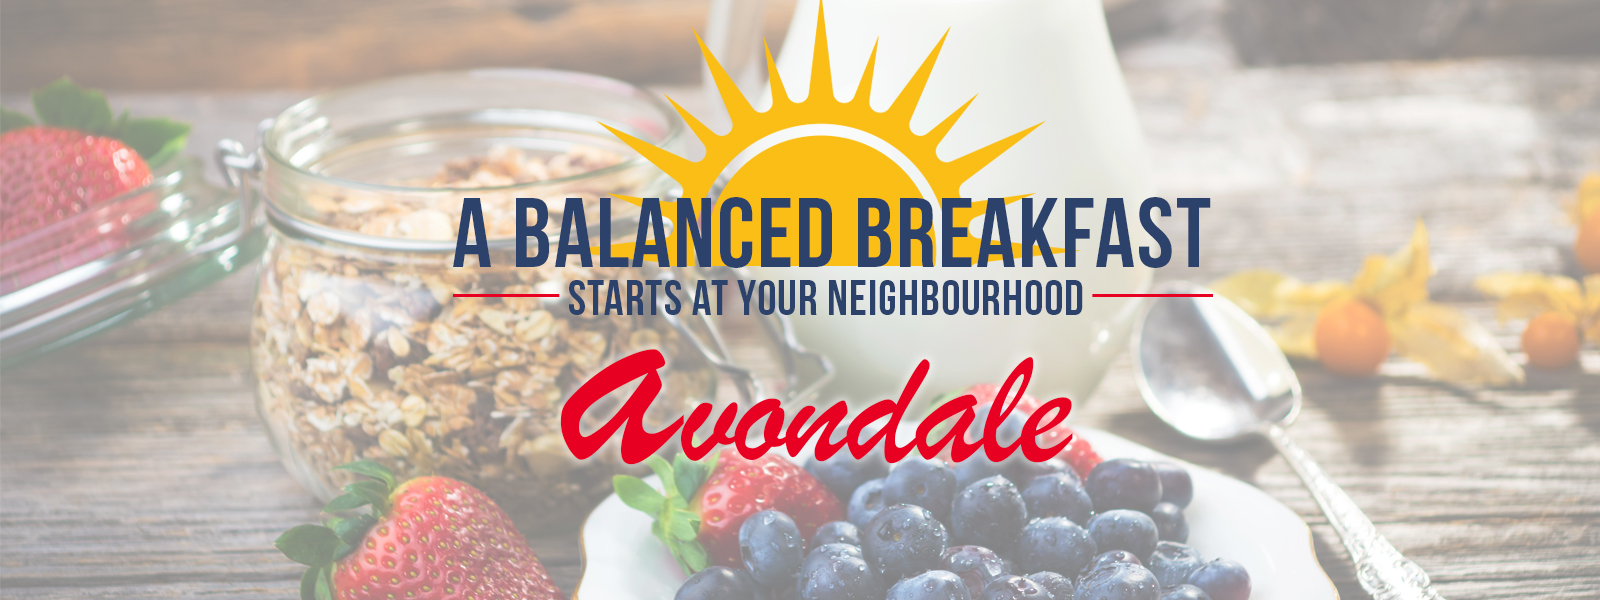 A balanced breakfast starts at your neighbourhood Avondale